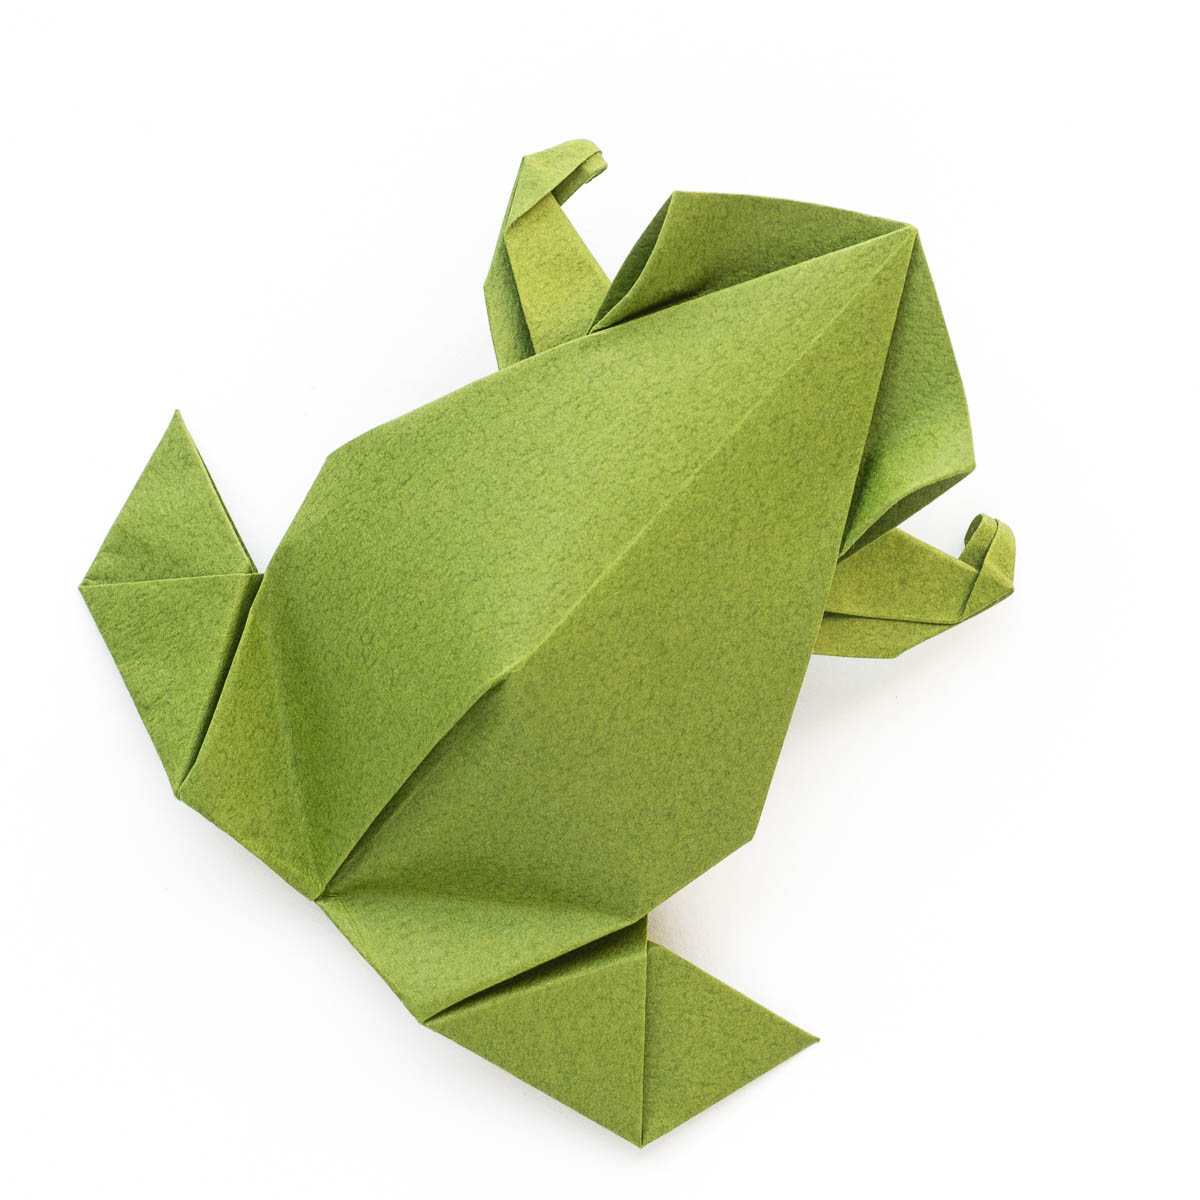 Pre columbian style origami frog by leyla torres go origami jeuxipadfo Images